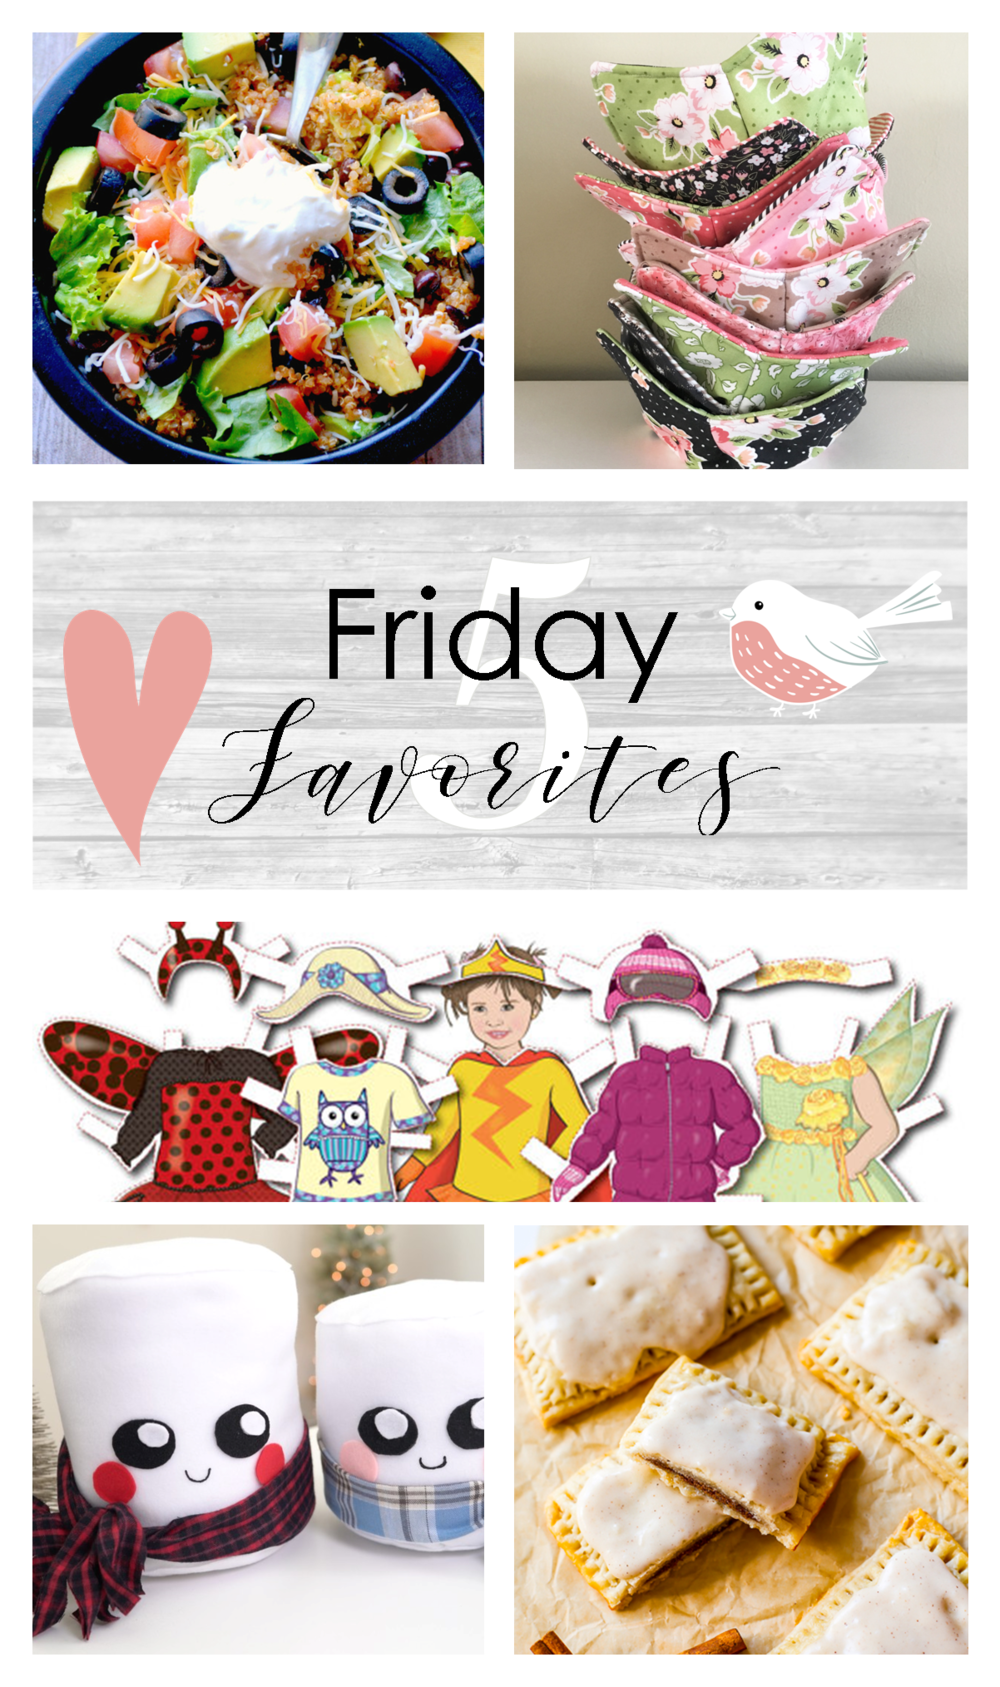 Friday Favorites 1.20.17